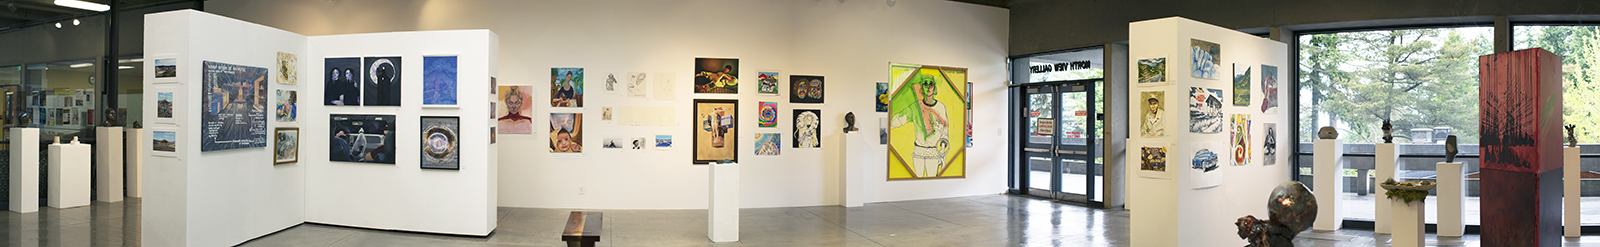 Panorama installation view of gallery with several artworks on the far wall in the background, on walls on the left and right, and on pedestals throughout the room. To the left is a freestanding artwork with windows behind it.